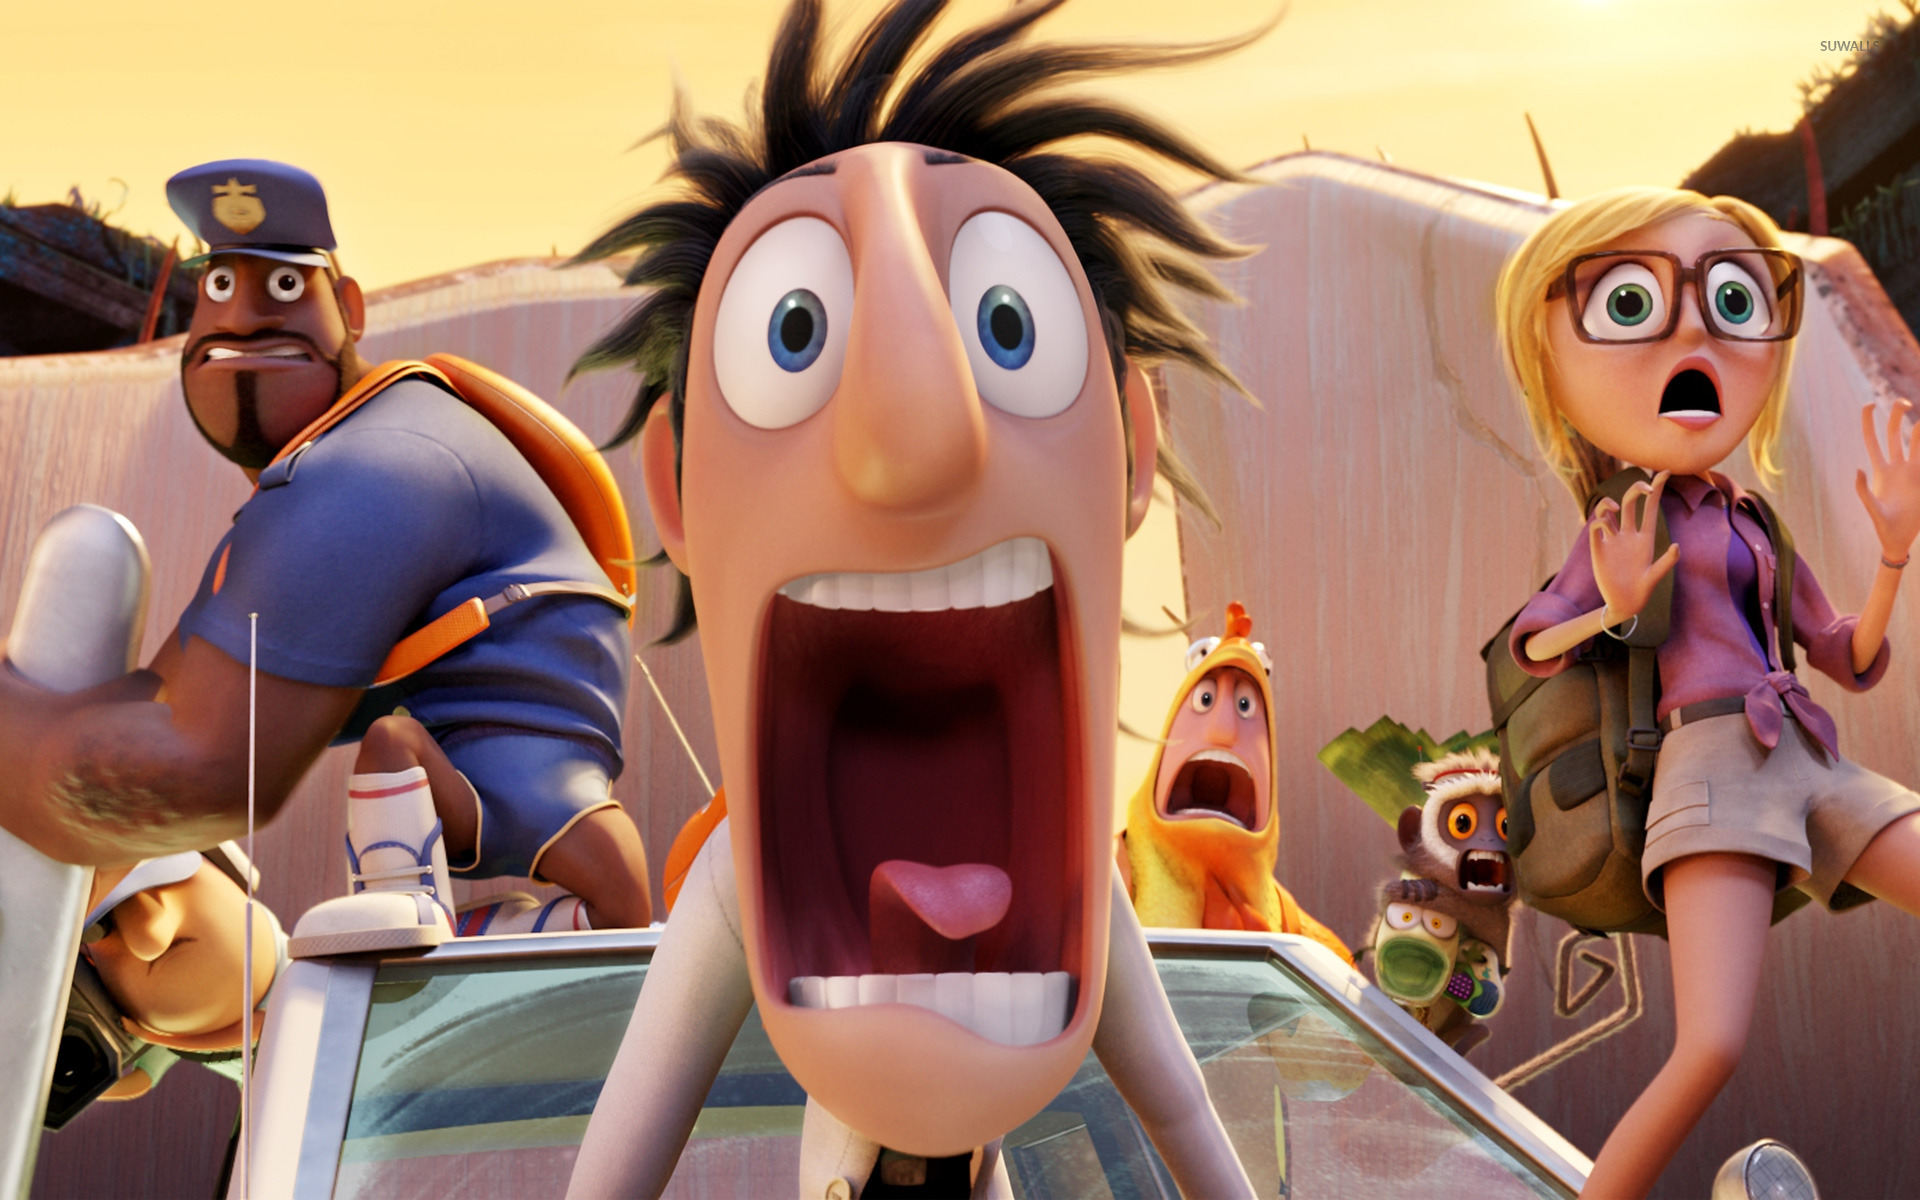 cloudy with a chance of meatballs 2 [8] wallpaper - cartoon